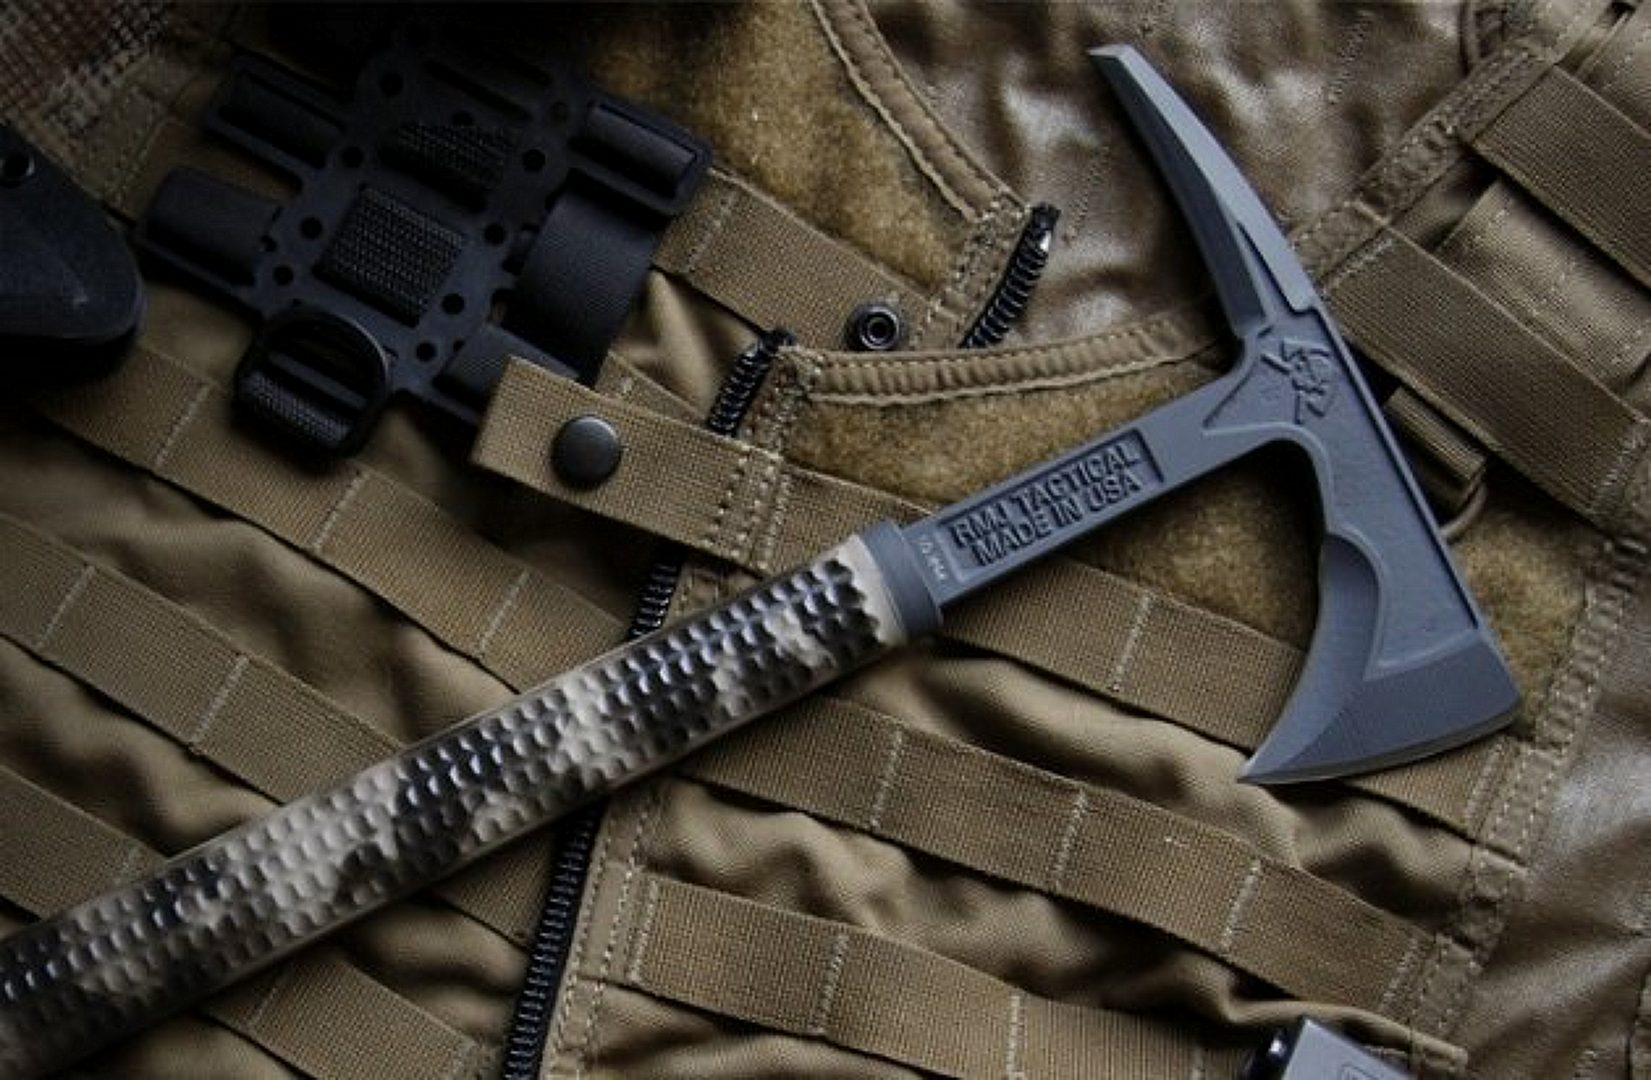 Best Tomahawks of 2020 for Breaching, Throwing, Bushcrafting or Woodworking